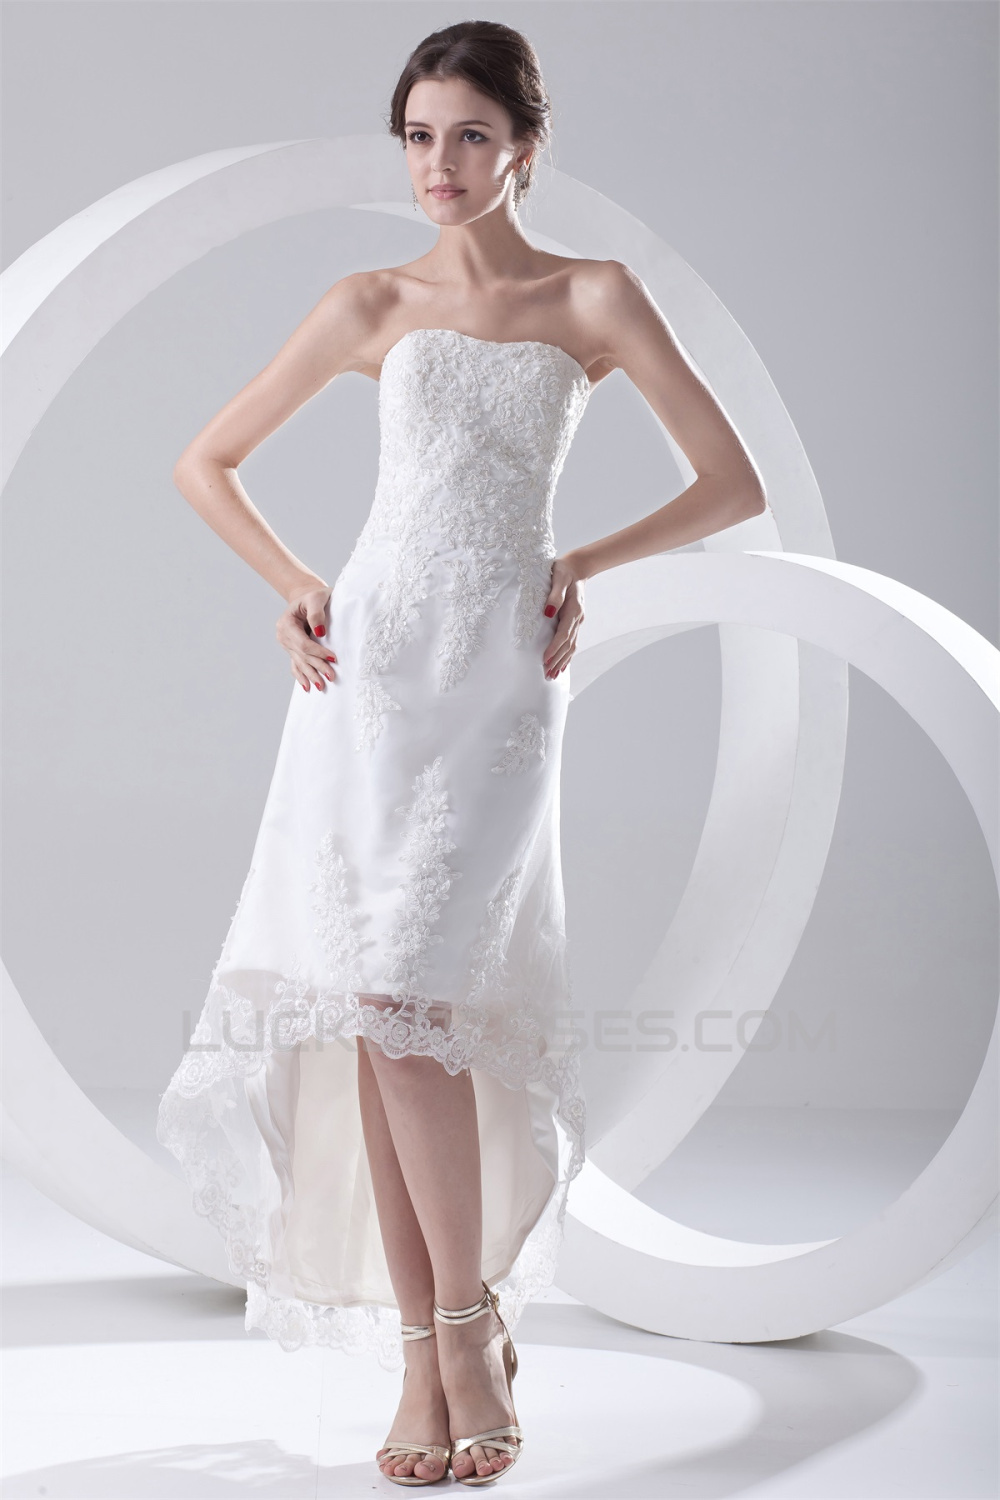 Satin Lace ALine Soft Sweetheart Reception High Low